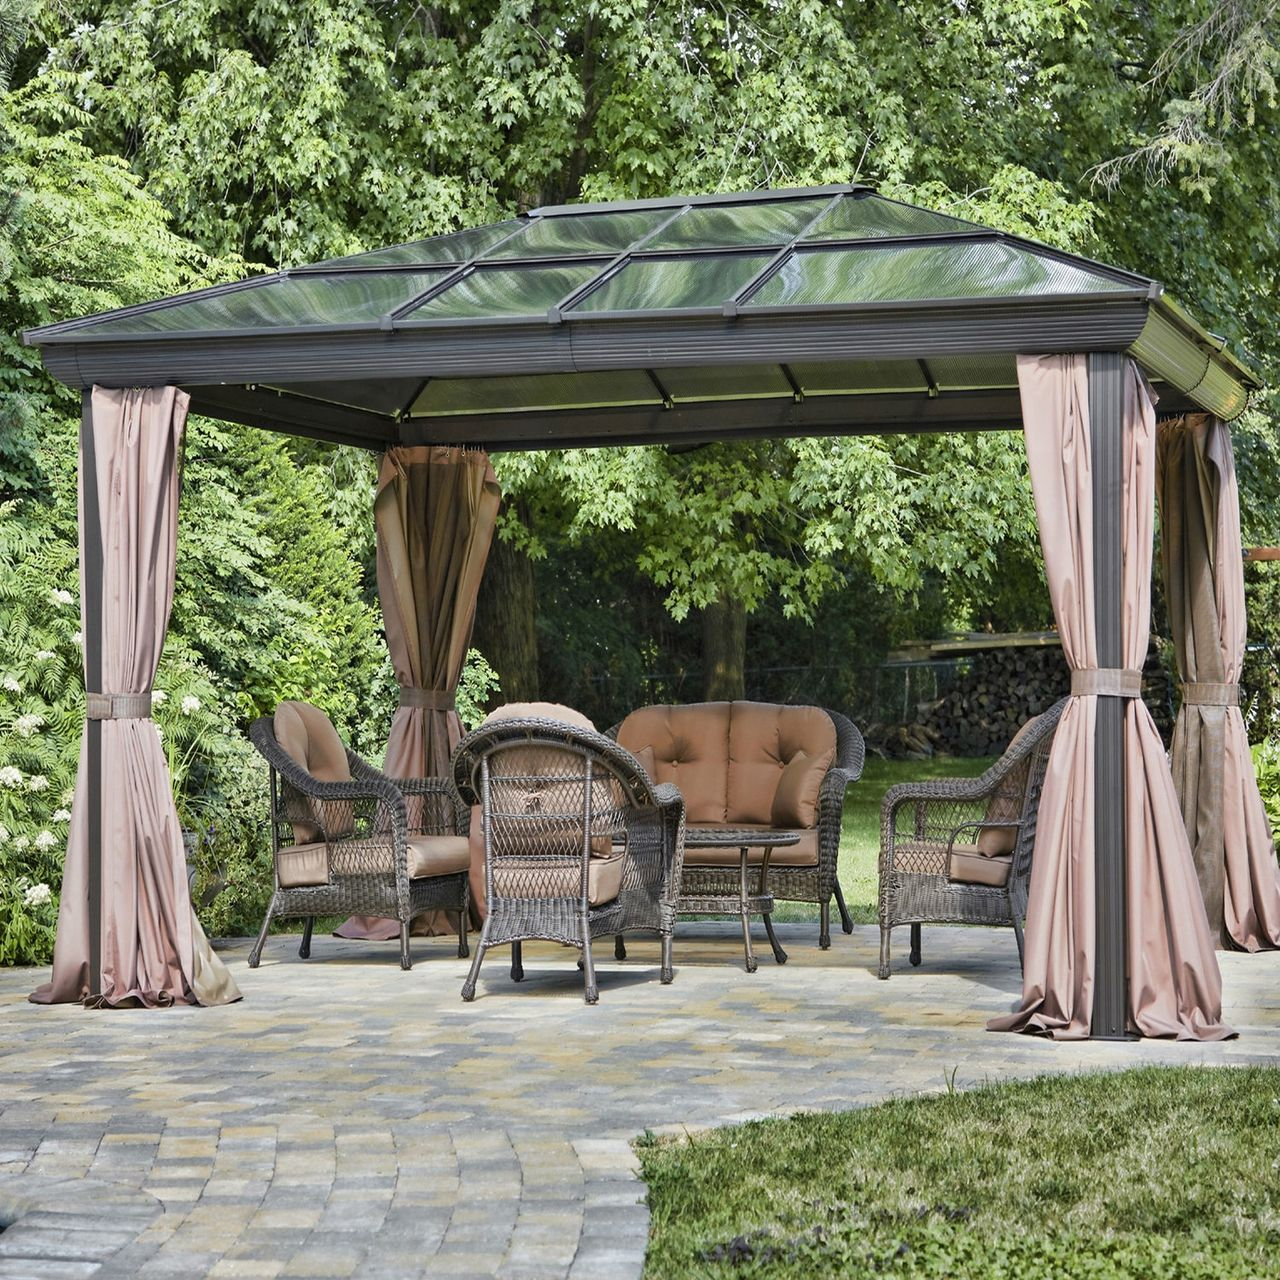 Gazebo curtains outdoor - 12 Ft X 16 Ft Year Round Use Gazebo With Uv Blocking Panels Canopy Curtains Canopiesgazebooutdoor